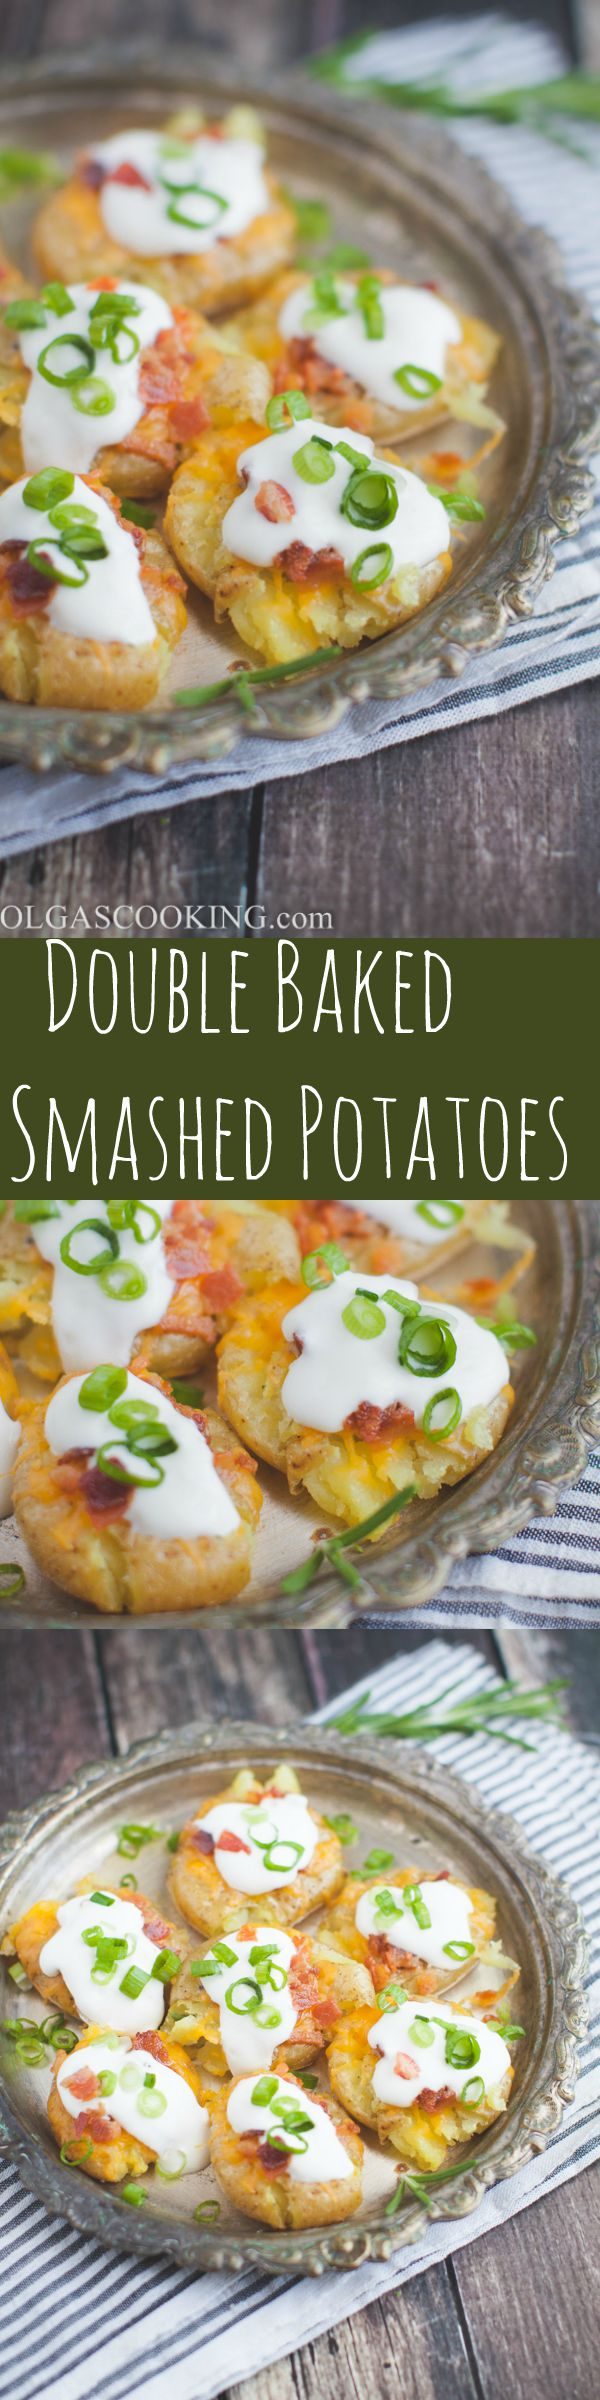 Double Baked Smashed Potatoes...So yummy and delicious!